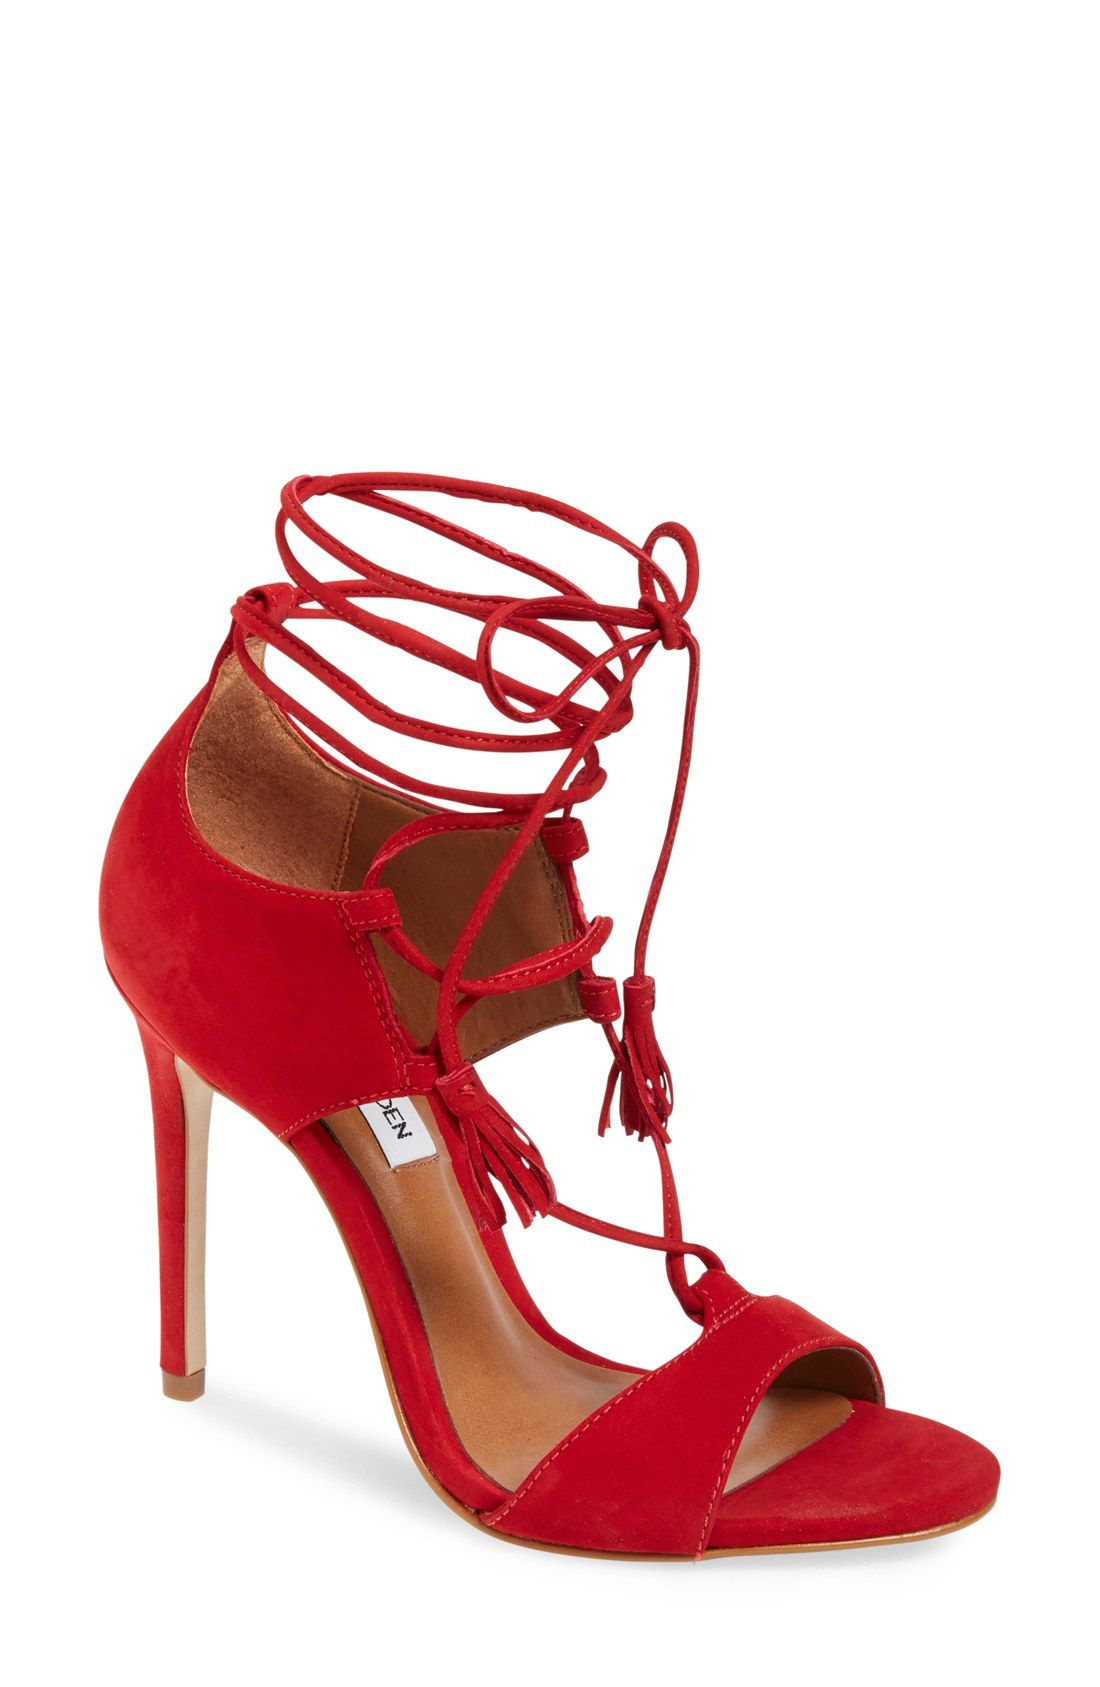 Accessorizing with a splash of red! These Steve Madden sandals lace up at  the ankles